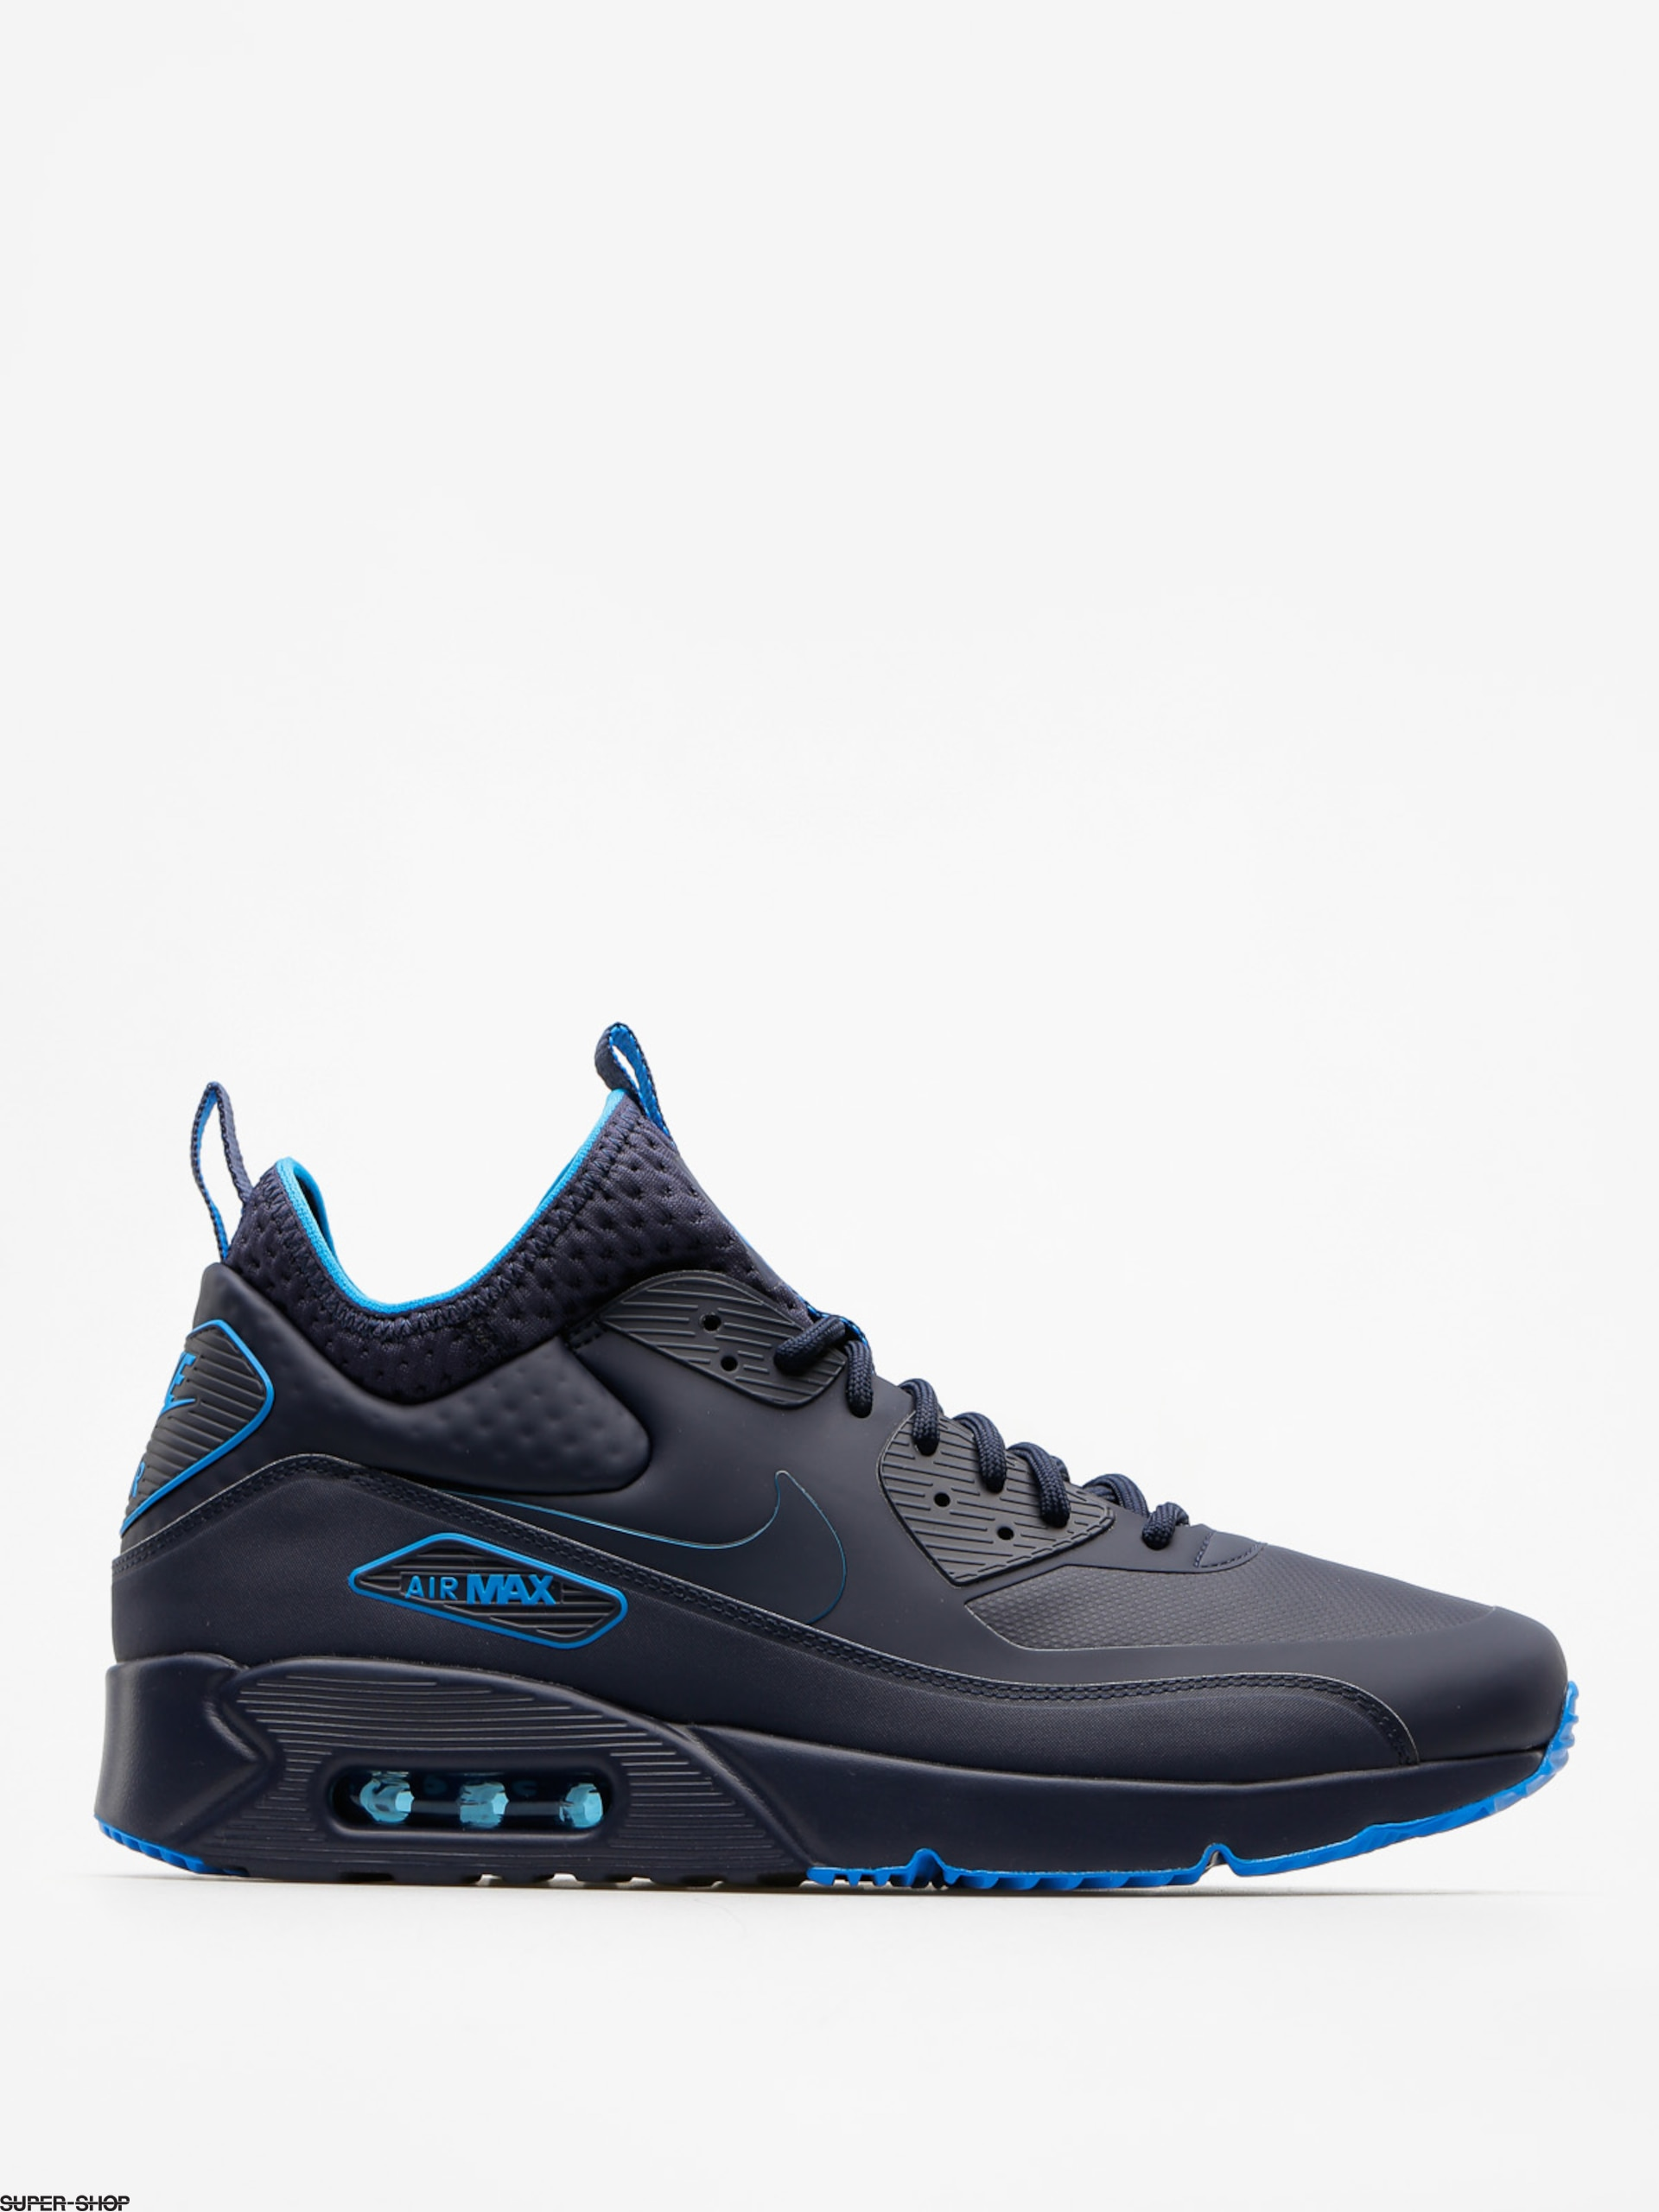 Nike Schuhe Air Max 90 Ultra Mid Winter Se (obsidian/obsidian thunder blue)